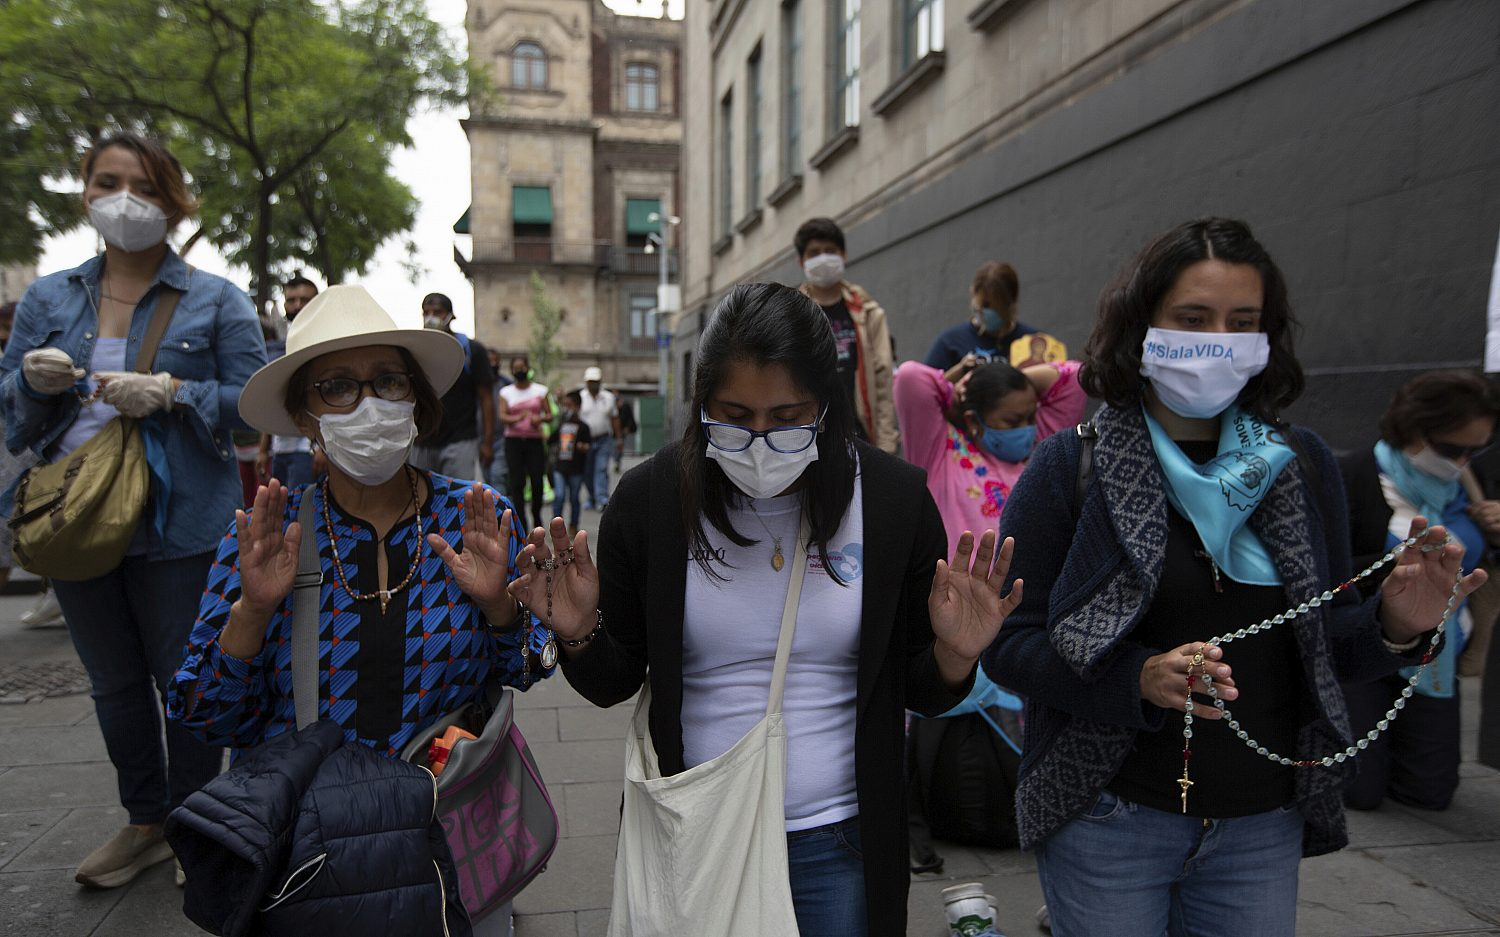 A lawless abortion law in Mexico